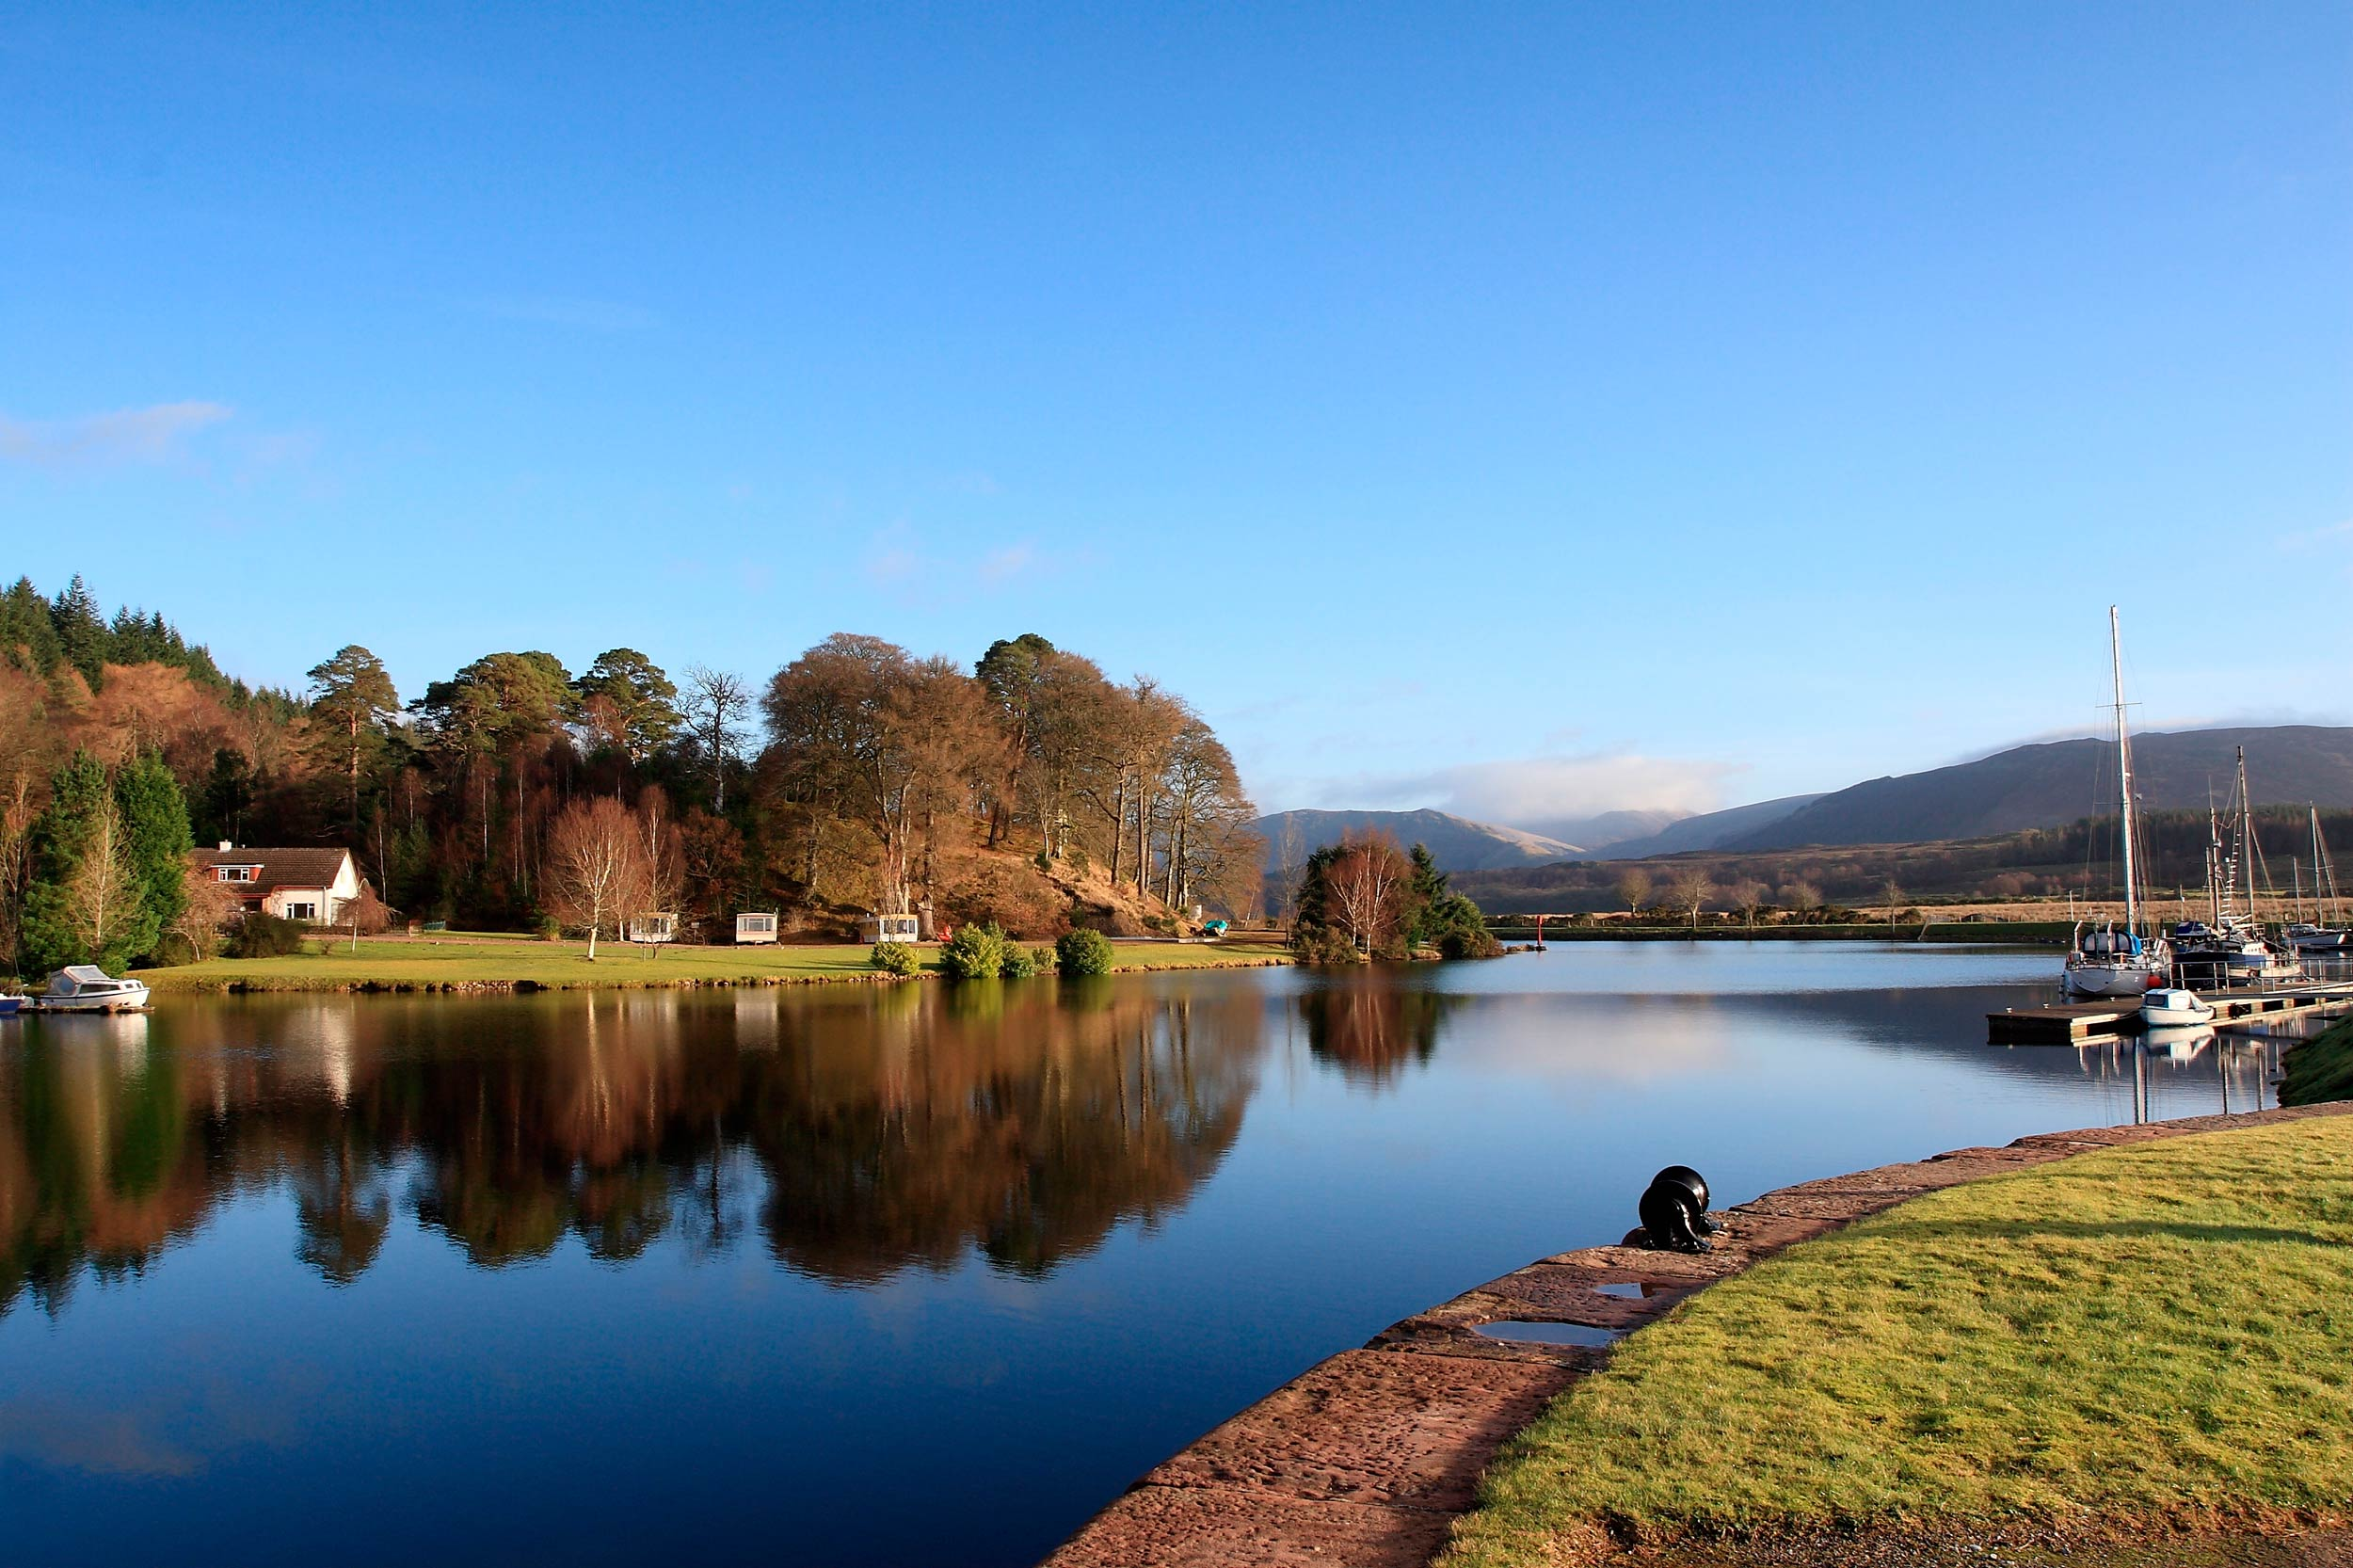 The Caledonian Canal at Gairlochy, in the Great Glen, Scotland  (John A Cameron/Shutterstock)